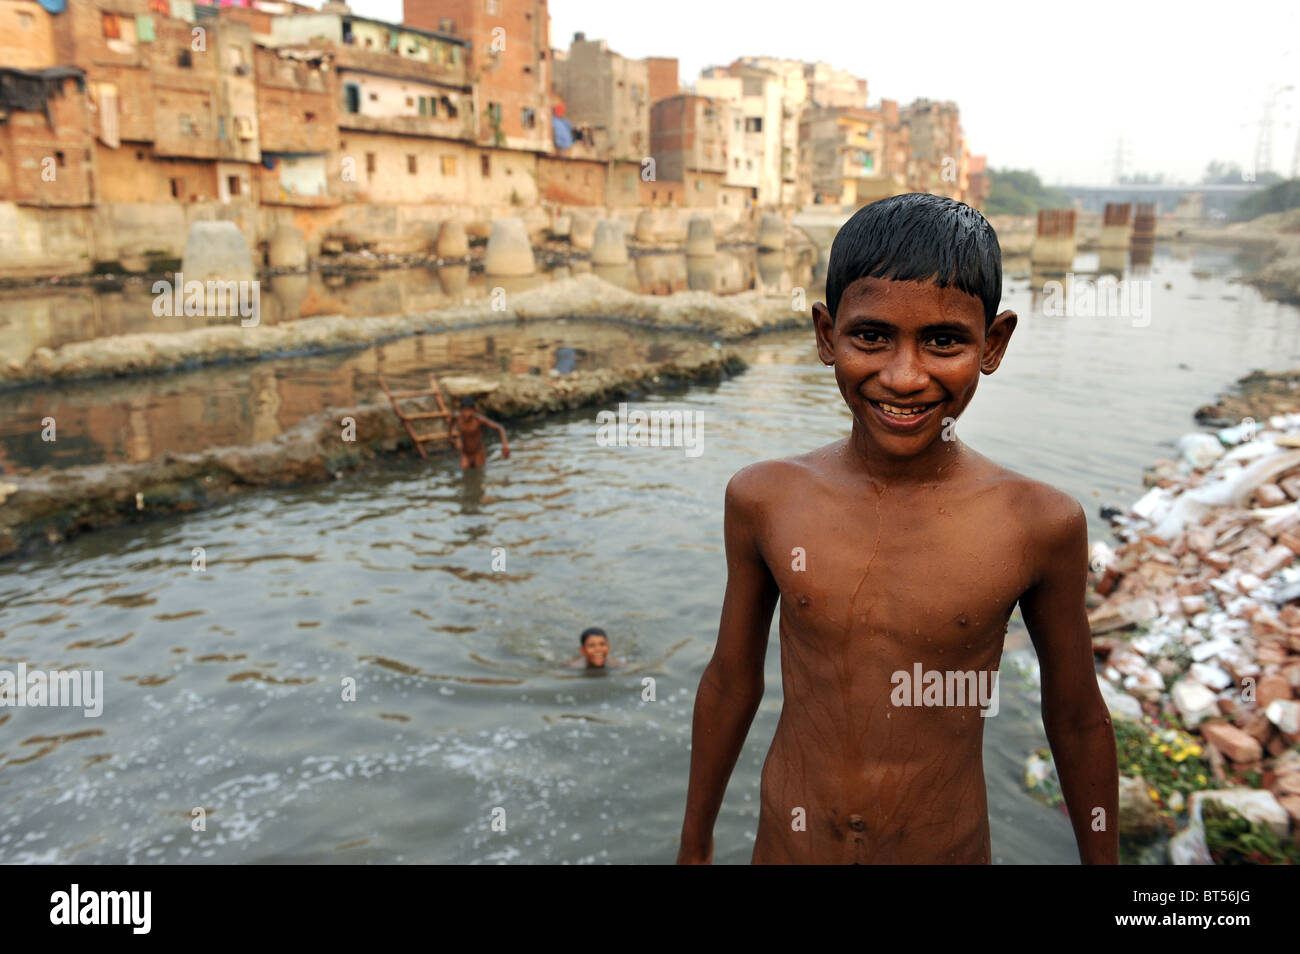 Children swimming in dirty water in India's capital New Delhi Stock